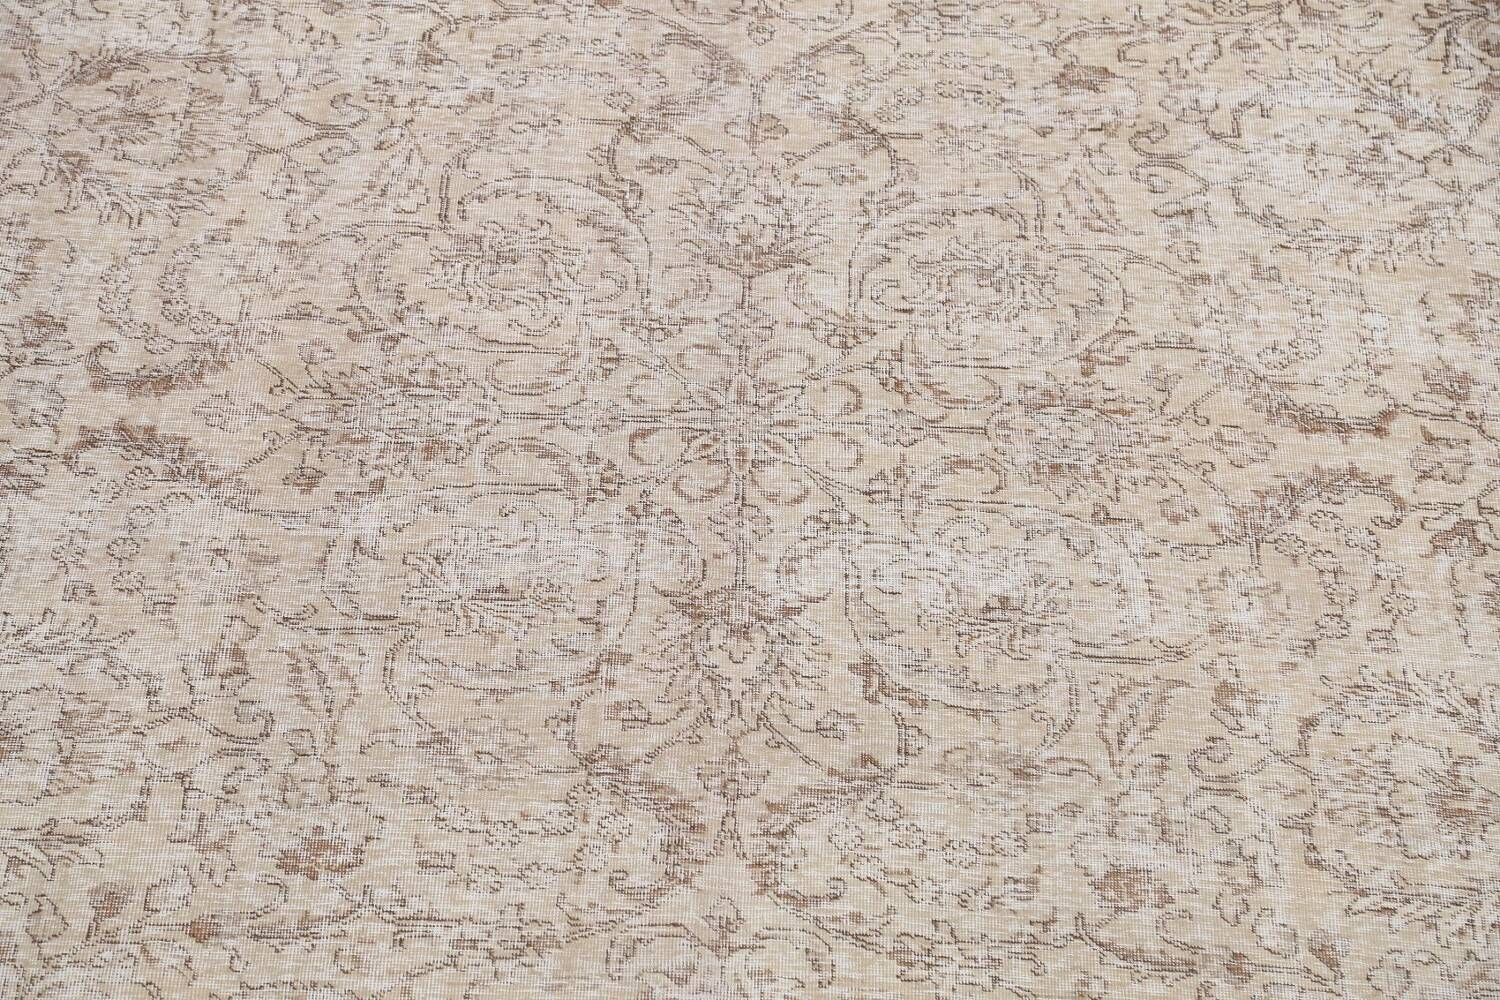 Antique Muted Floral Tabriz Persian Area Rug 9x12 image 4